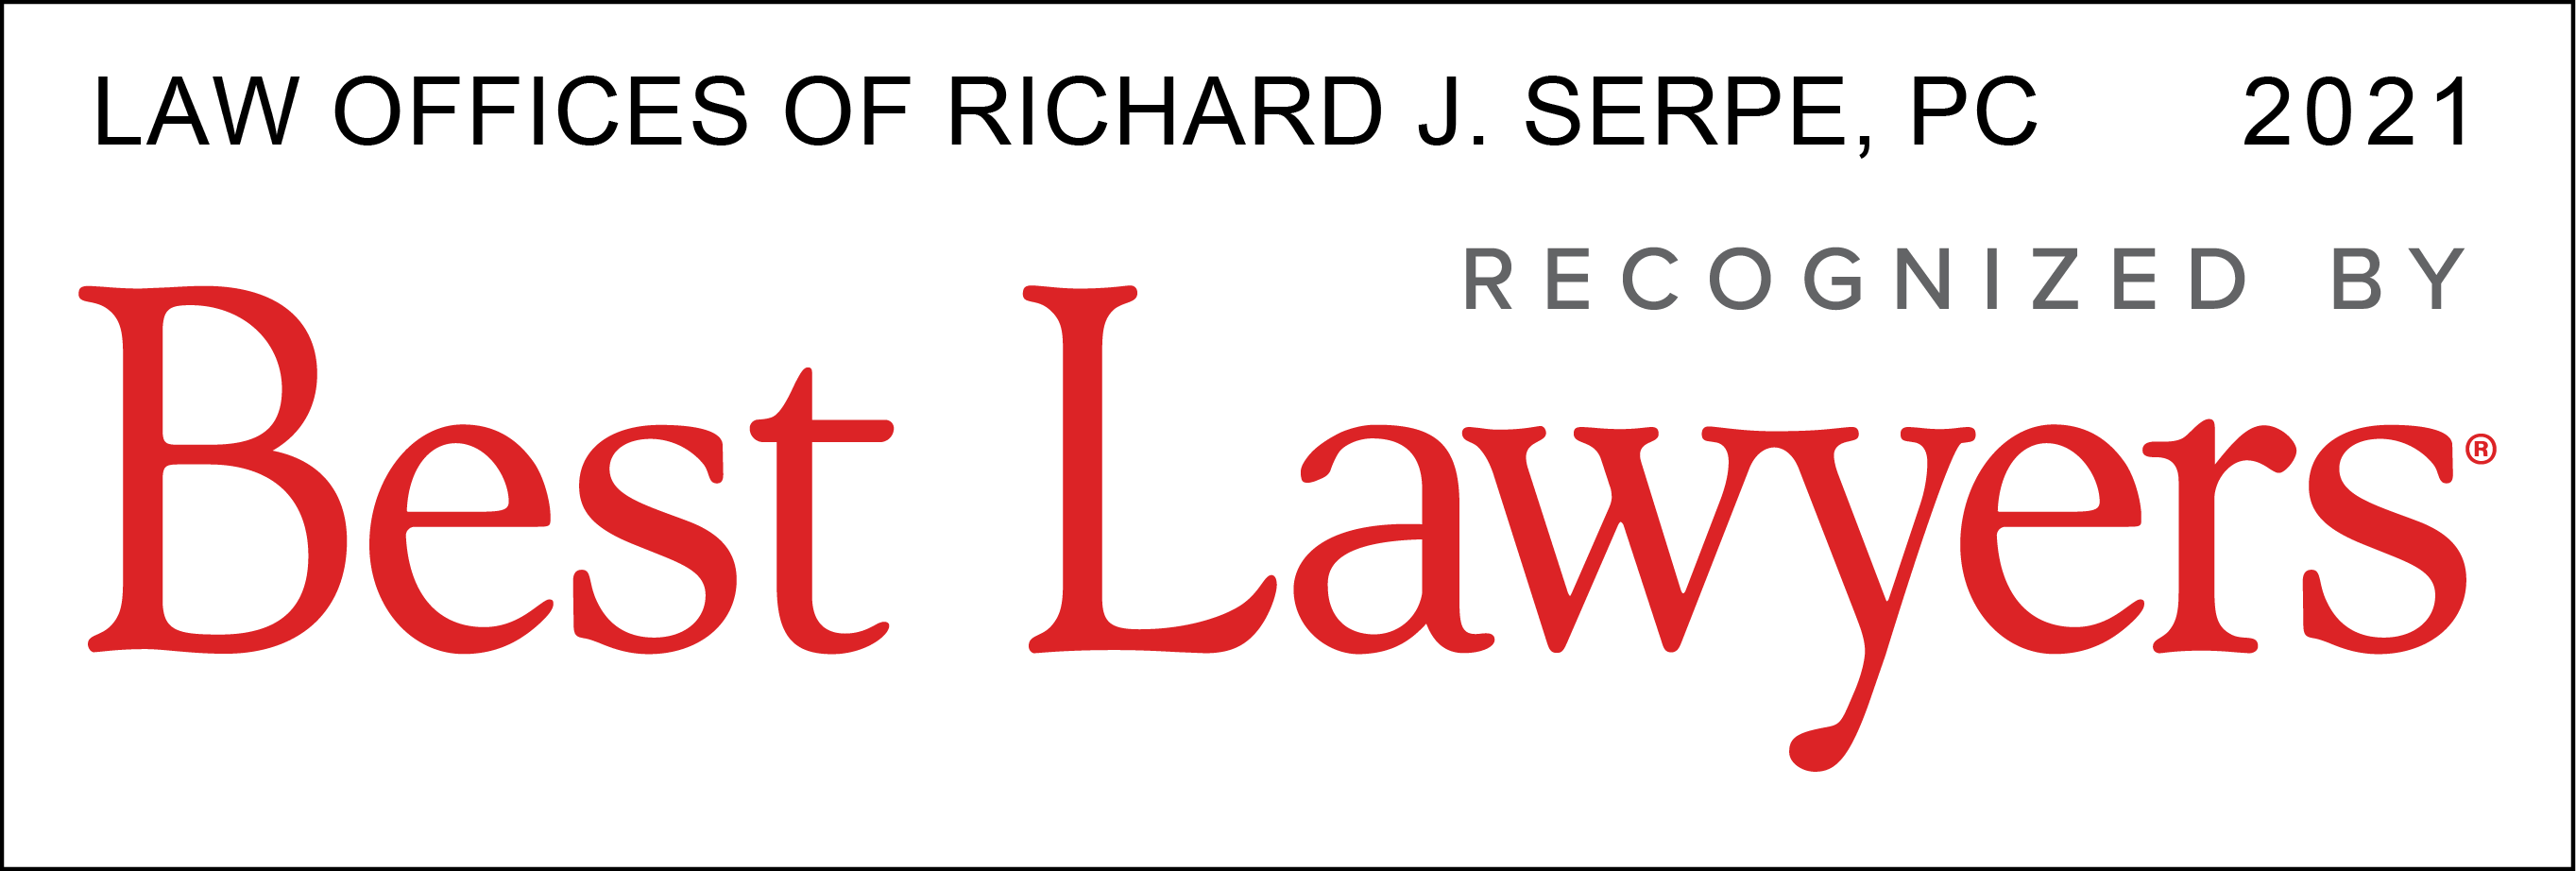 Virginia Best Lawyers 2021, Richard Serpe